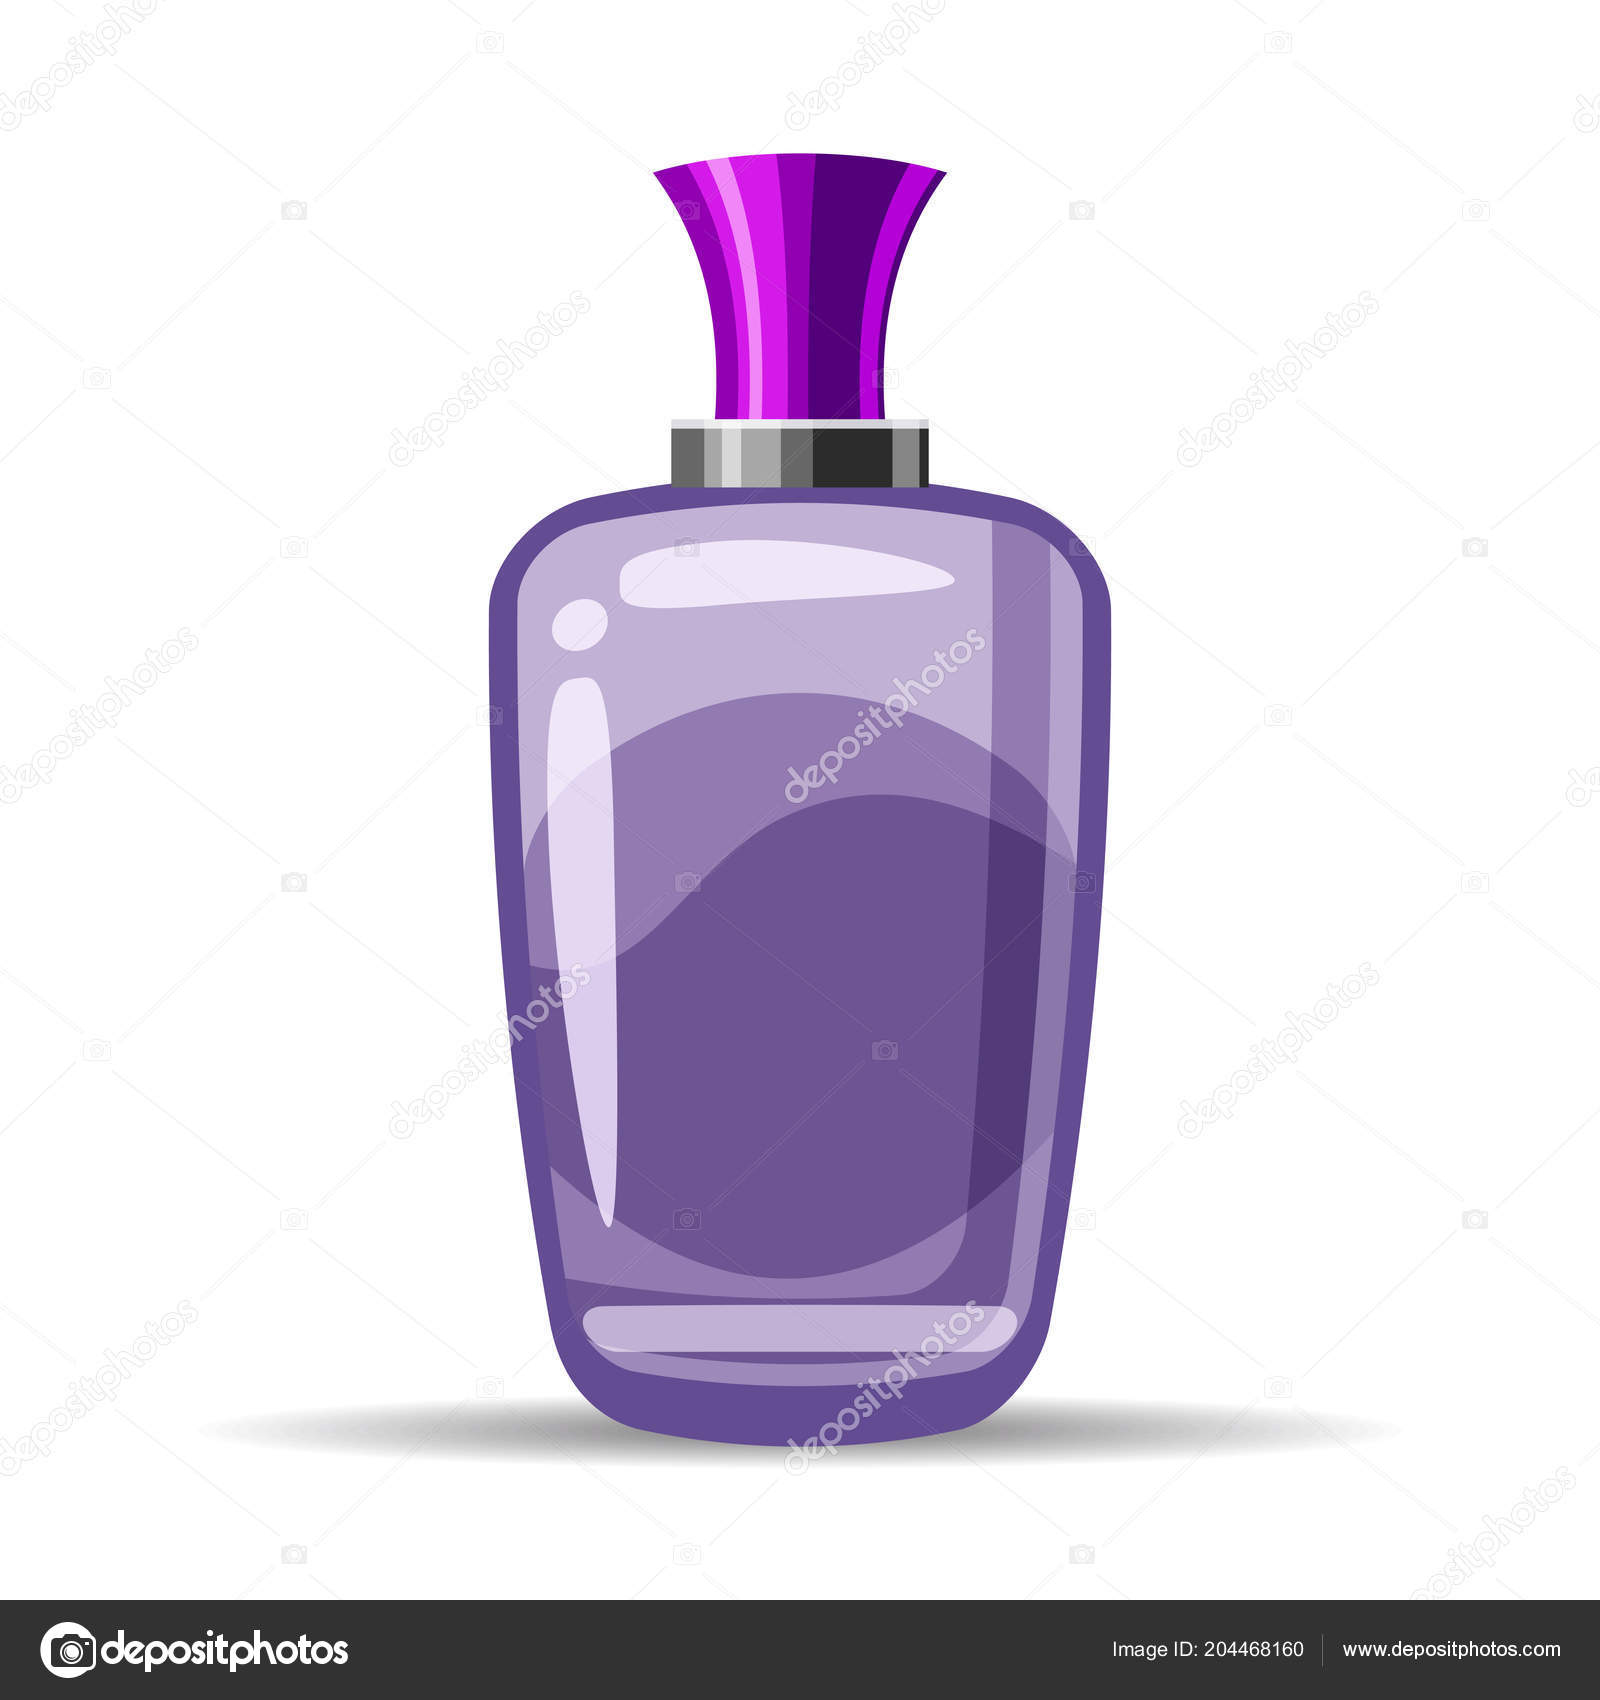 Toilet and Eau de Toilette: What is the Difference? 91